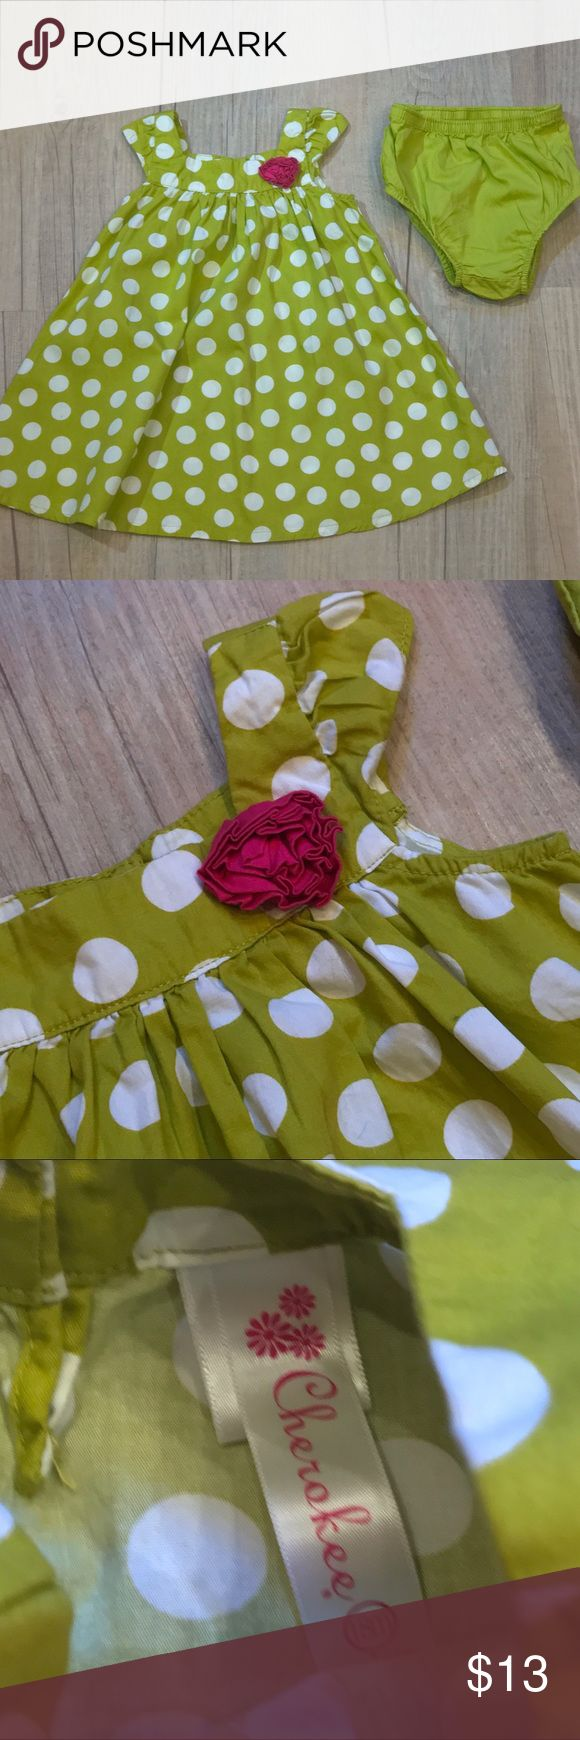 "Polka Dot Dress with Bloomers Cherokee brand, size 18 months, in EUC. Petty green color with white Polka Dots and a pink flower near neckline. Matching bloomers included, measures 17"" long. (6-6) Cherokee Dresses"